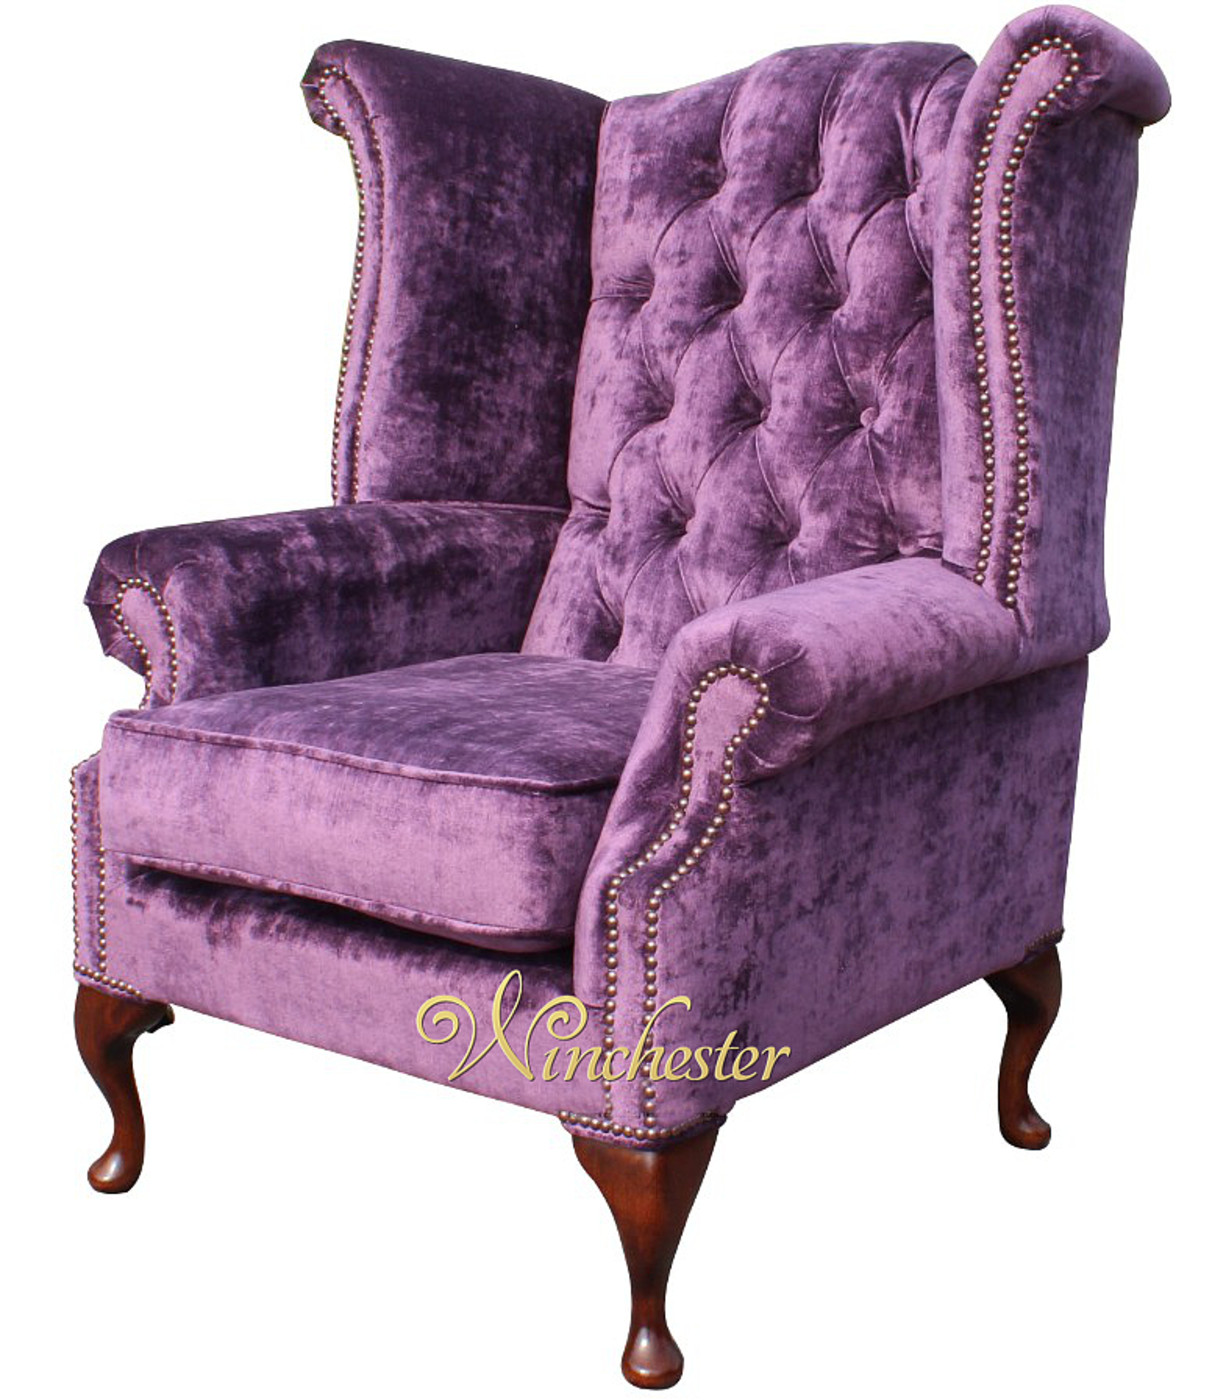 chesterfield-queen-anne-wing-armchair-crushed-velvet-aubergine-wc  sc 1 st  Winchester Leather & Chesterfield Queen Anne High Back Wing Chair Elegance Crushed ...